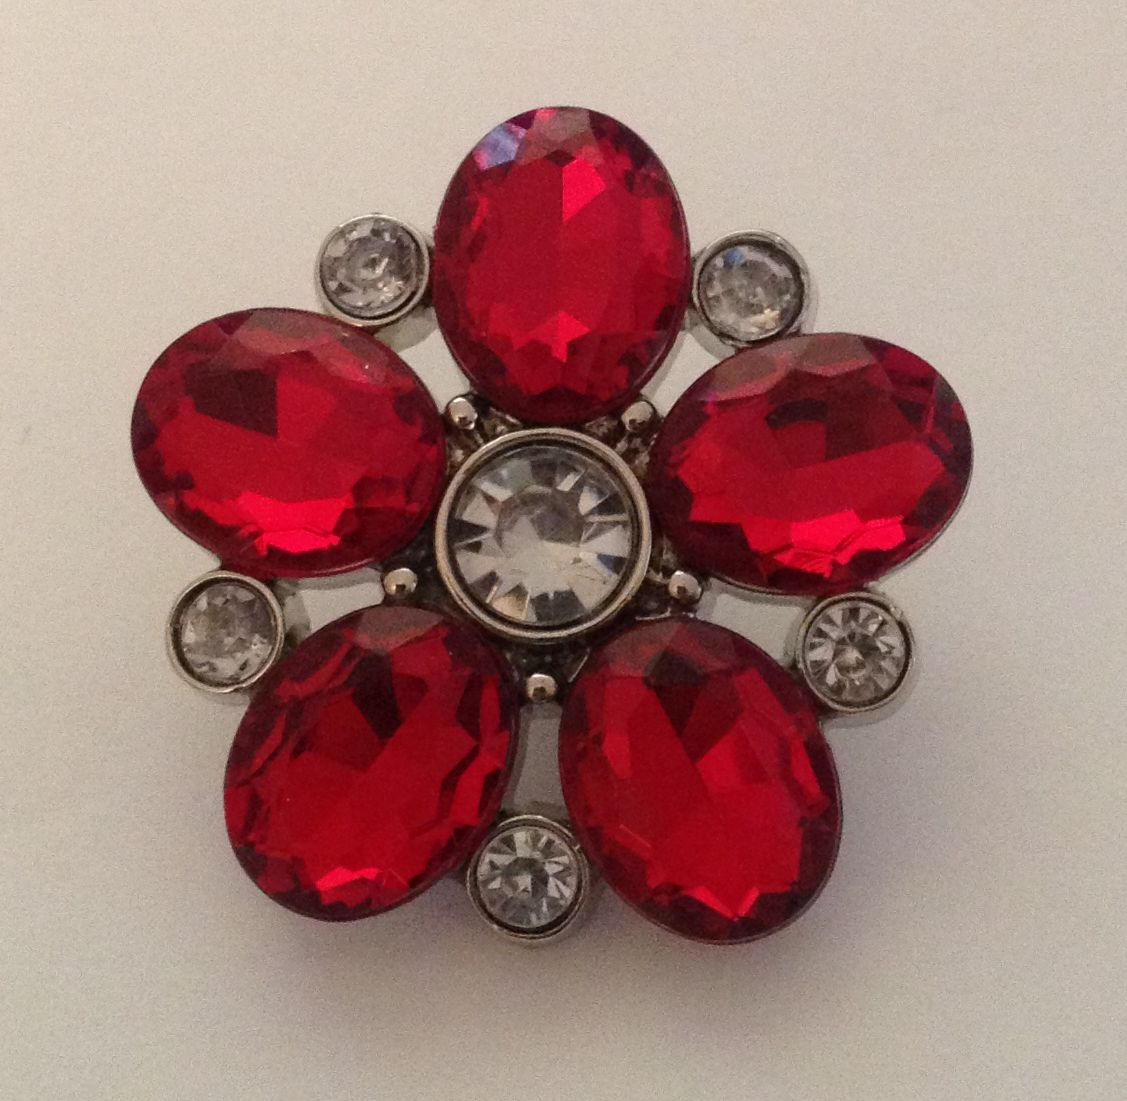 Flower Blingy Button - Red - 1 piece